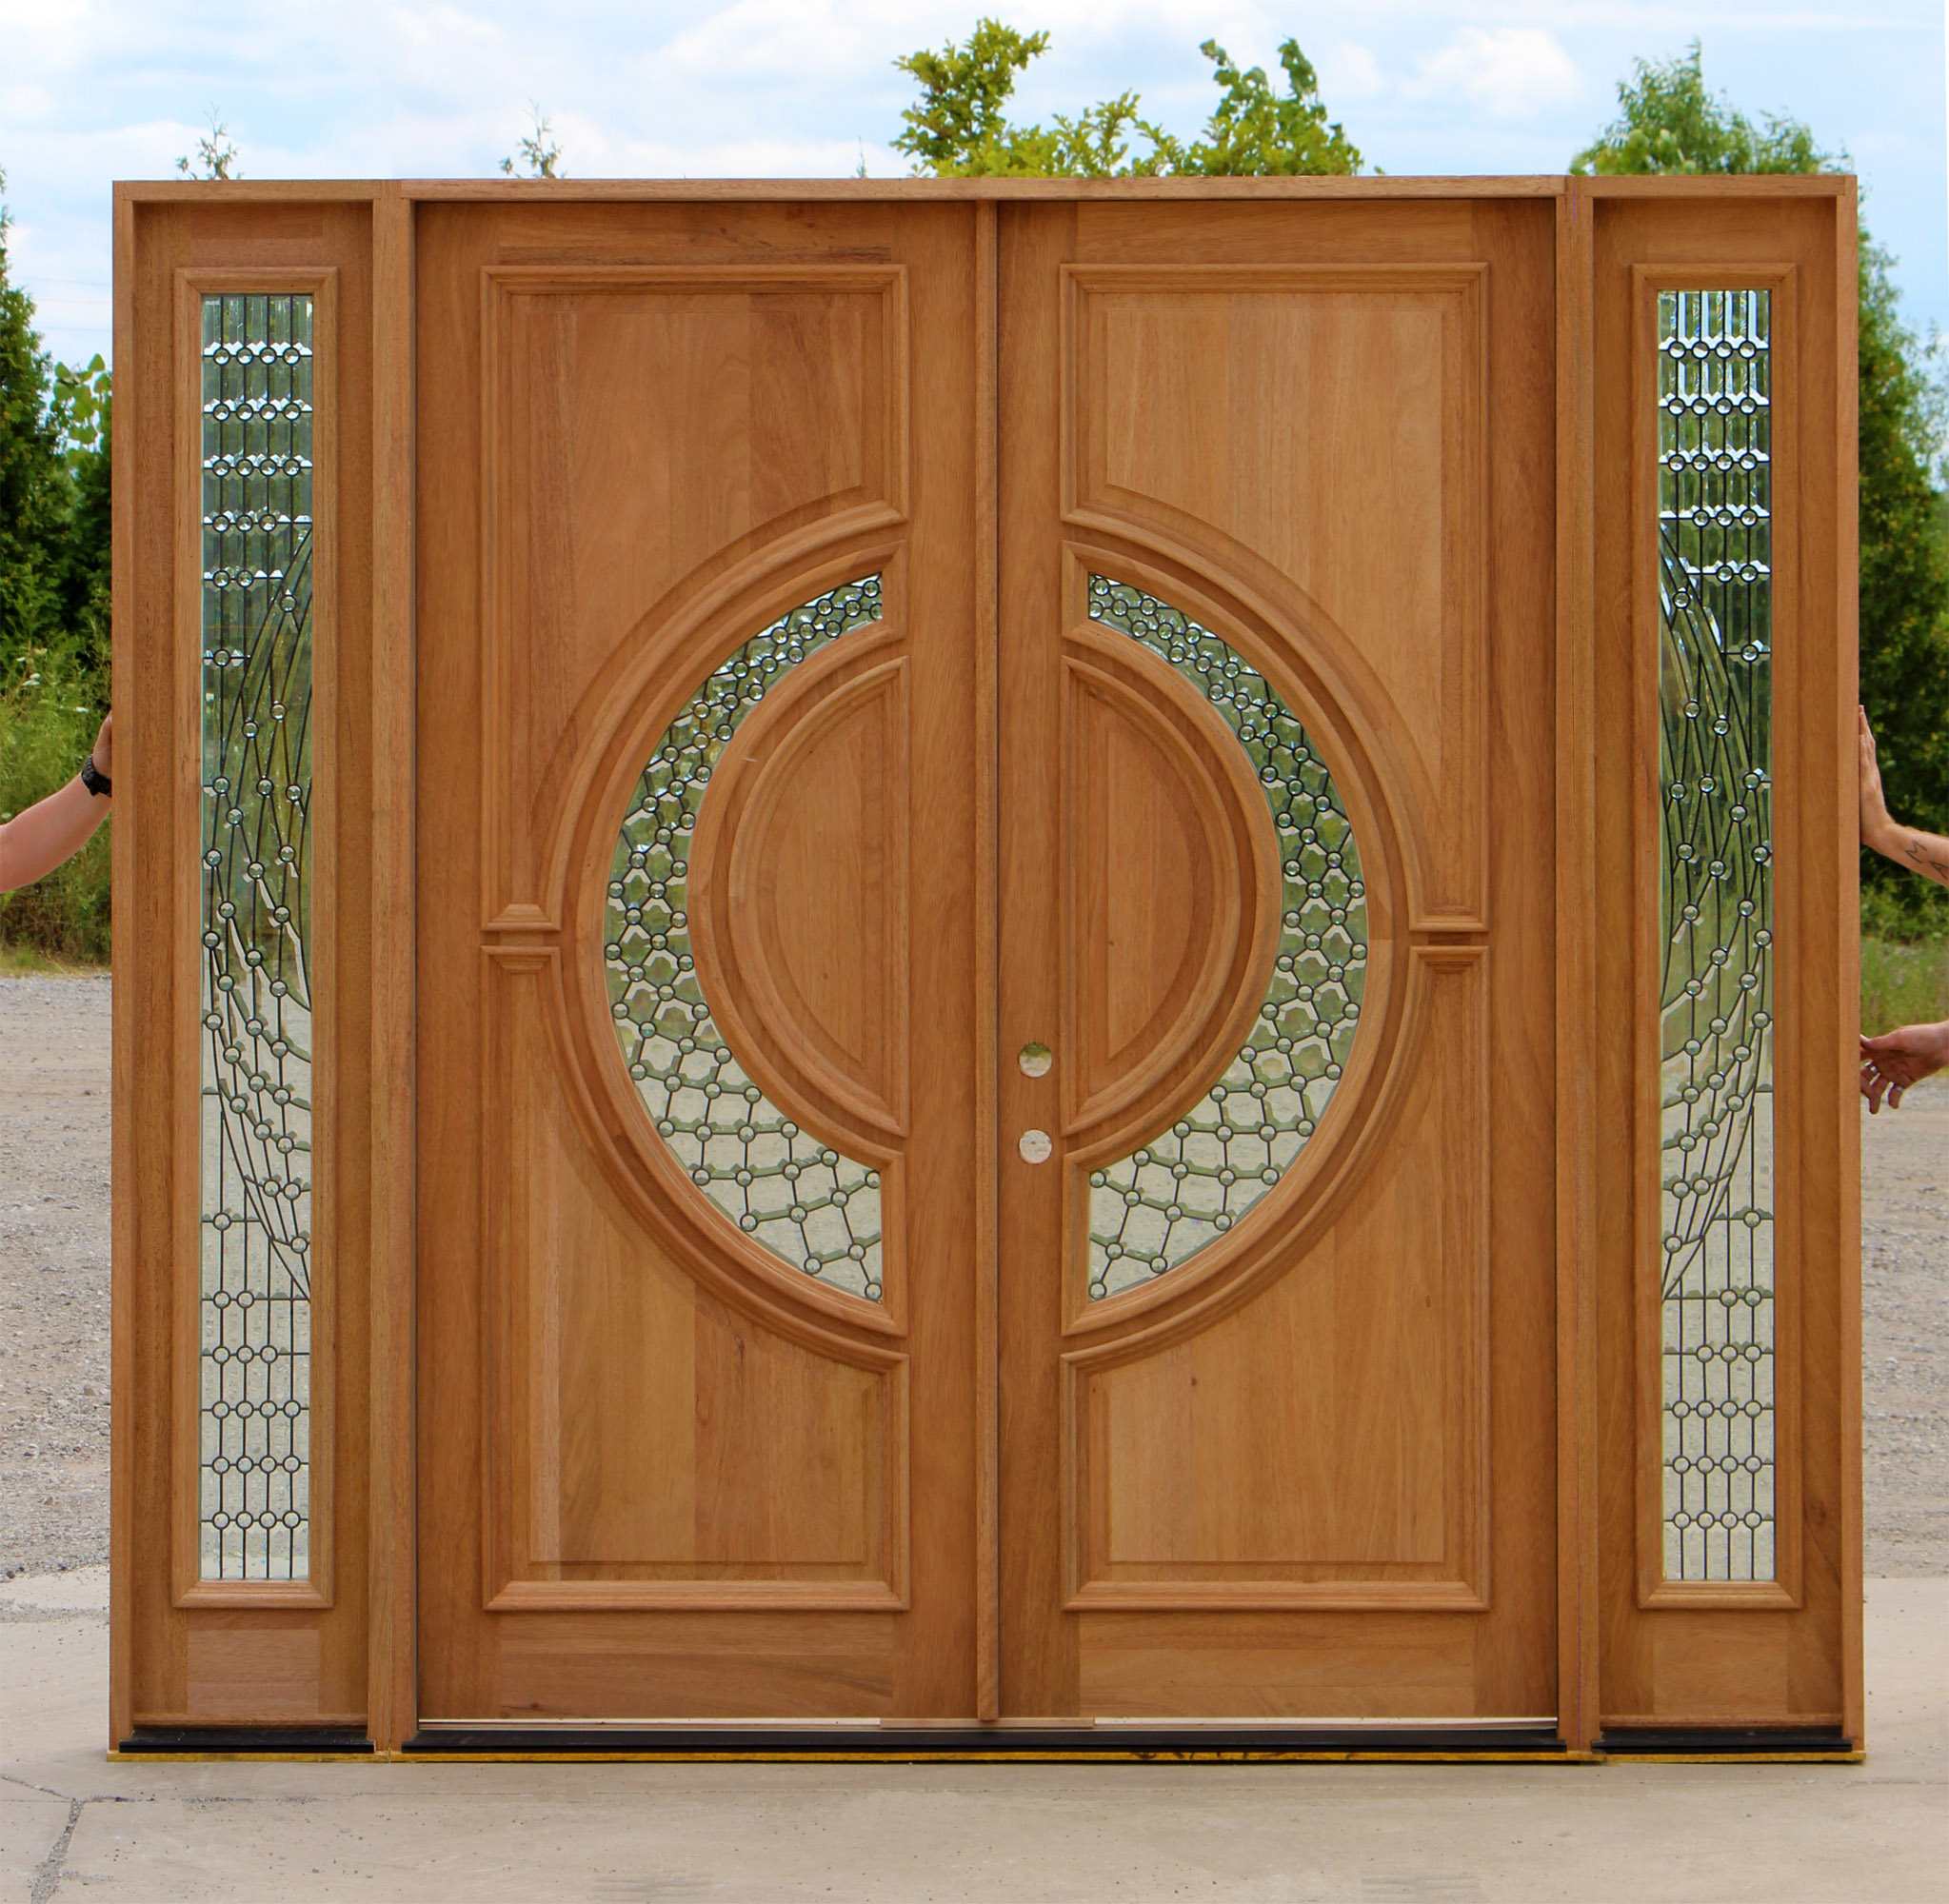 Exterior Double Front Doors with Glass 2047 x 2000